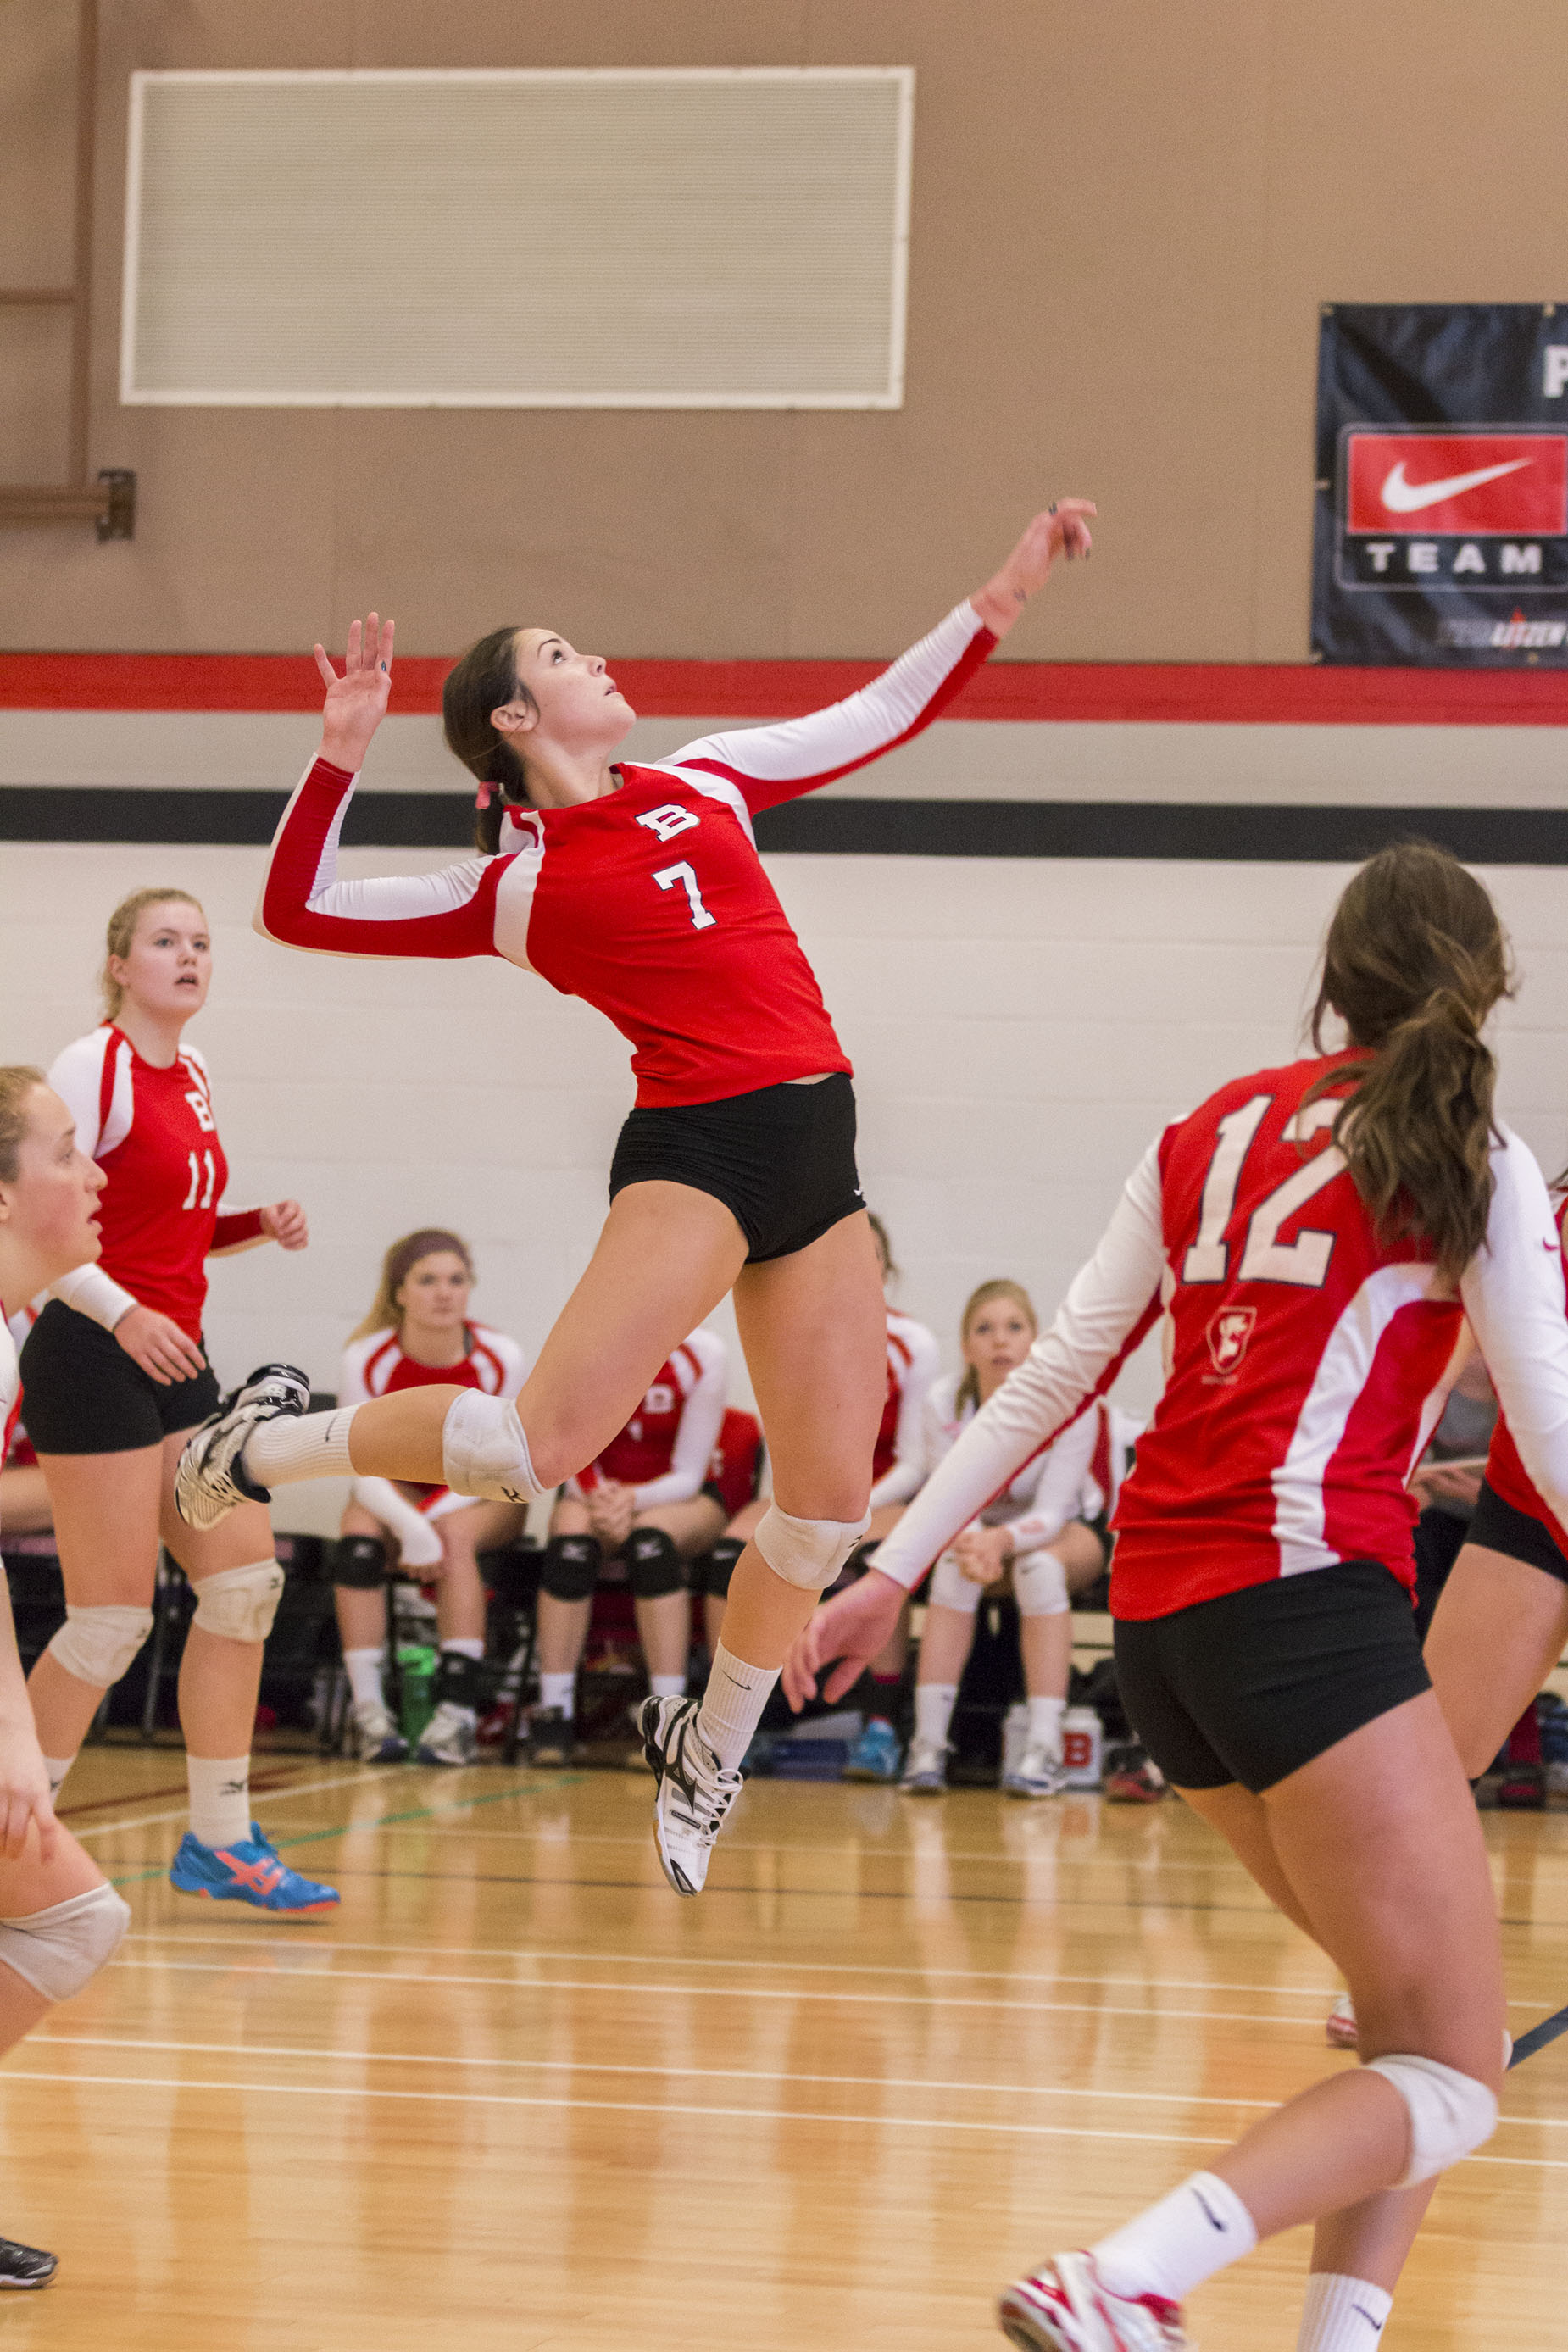 volleyball player Get the latest high school sports high school girls volleyball news, rankings, schedules, stats, scores, results & athletes info for high school football, soccer, basketball, baseball, and more at alcom.